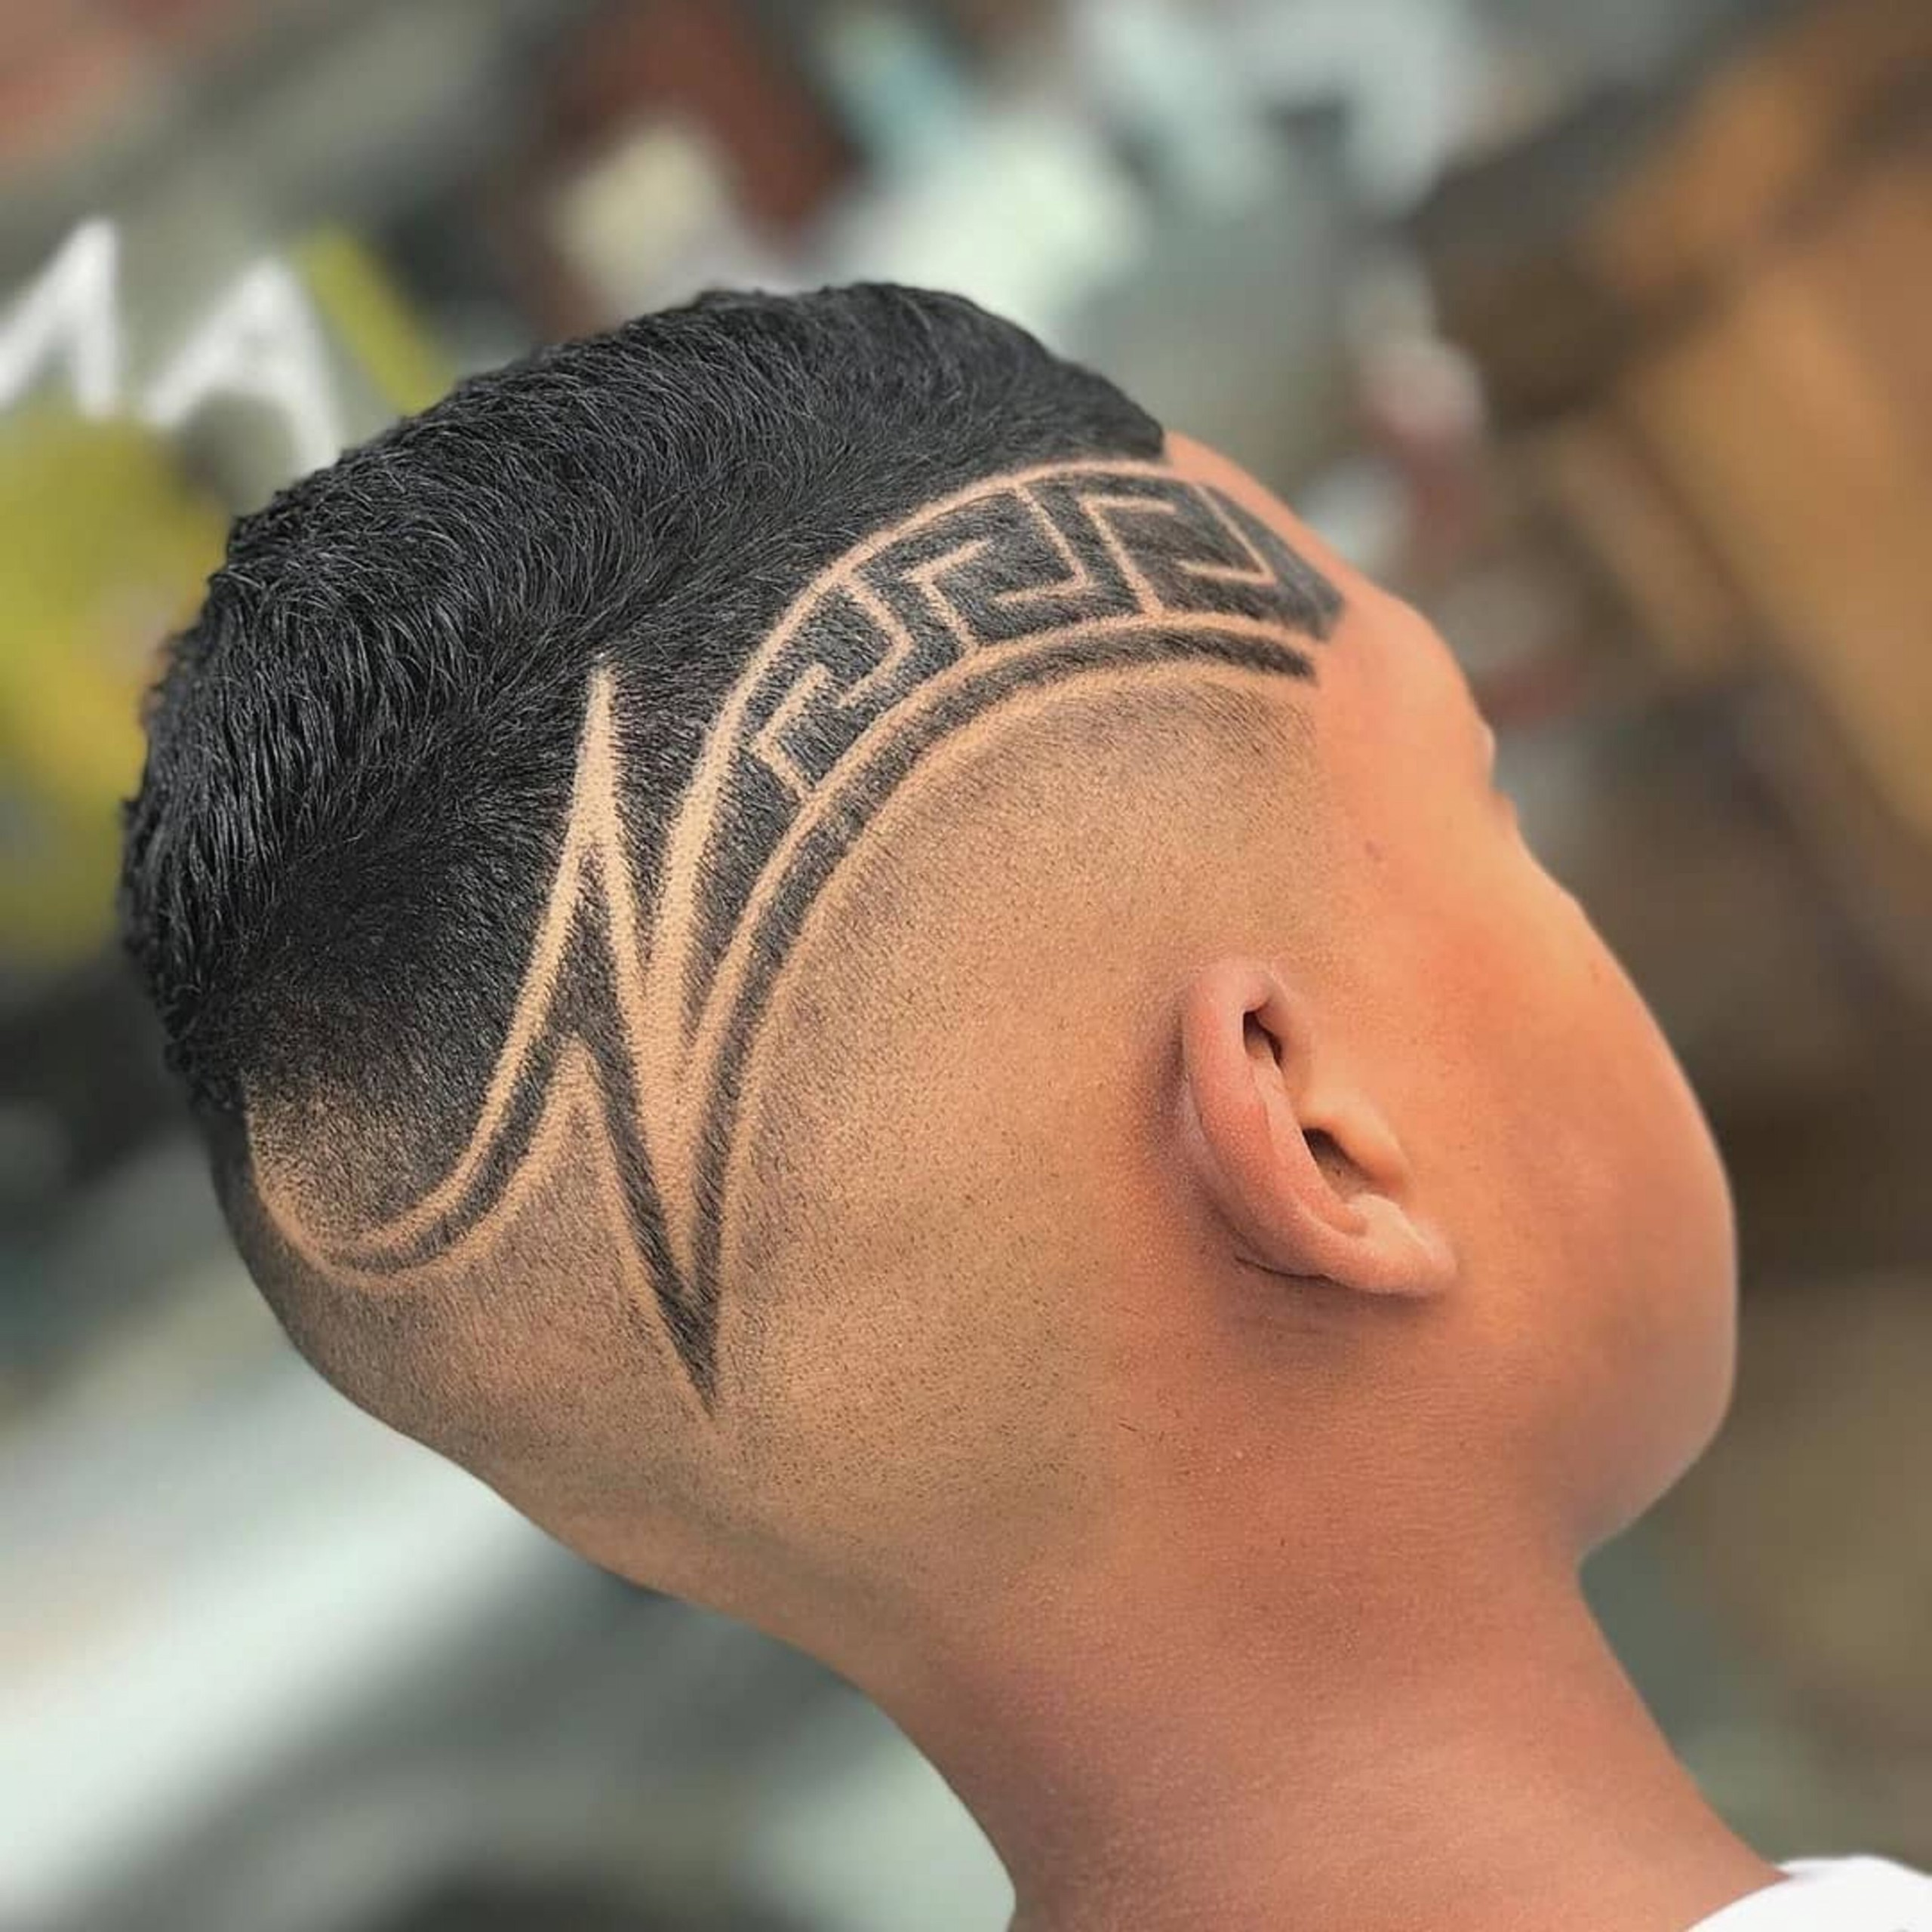 A faded haircut with an original design for boys.